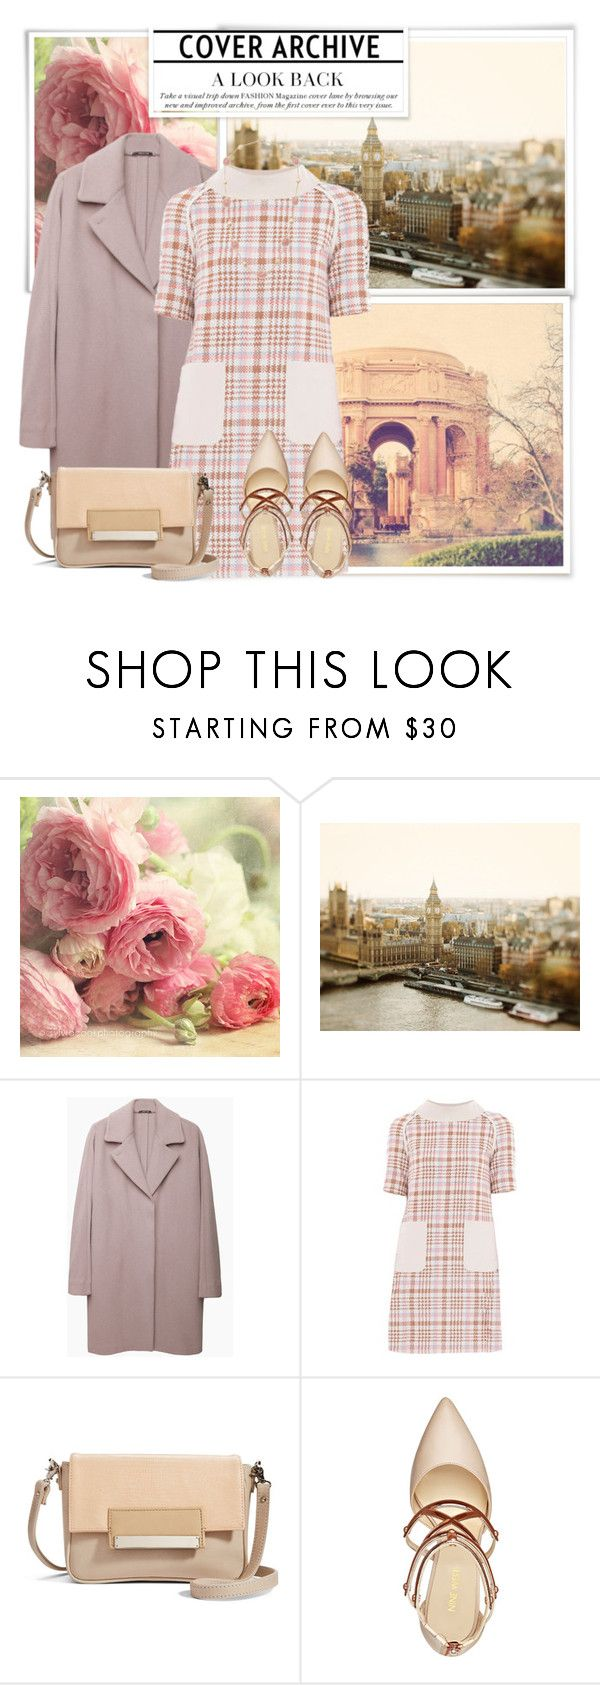 """""""Untitled #454"""" by daydreaming1821 ❤ liked on Polyvore featuring WALL, Maison Margiela, Victor Xenia, Lizzie Fortunato, Nine West and Marco Bicego"""